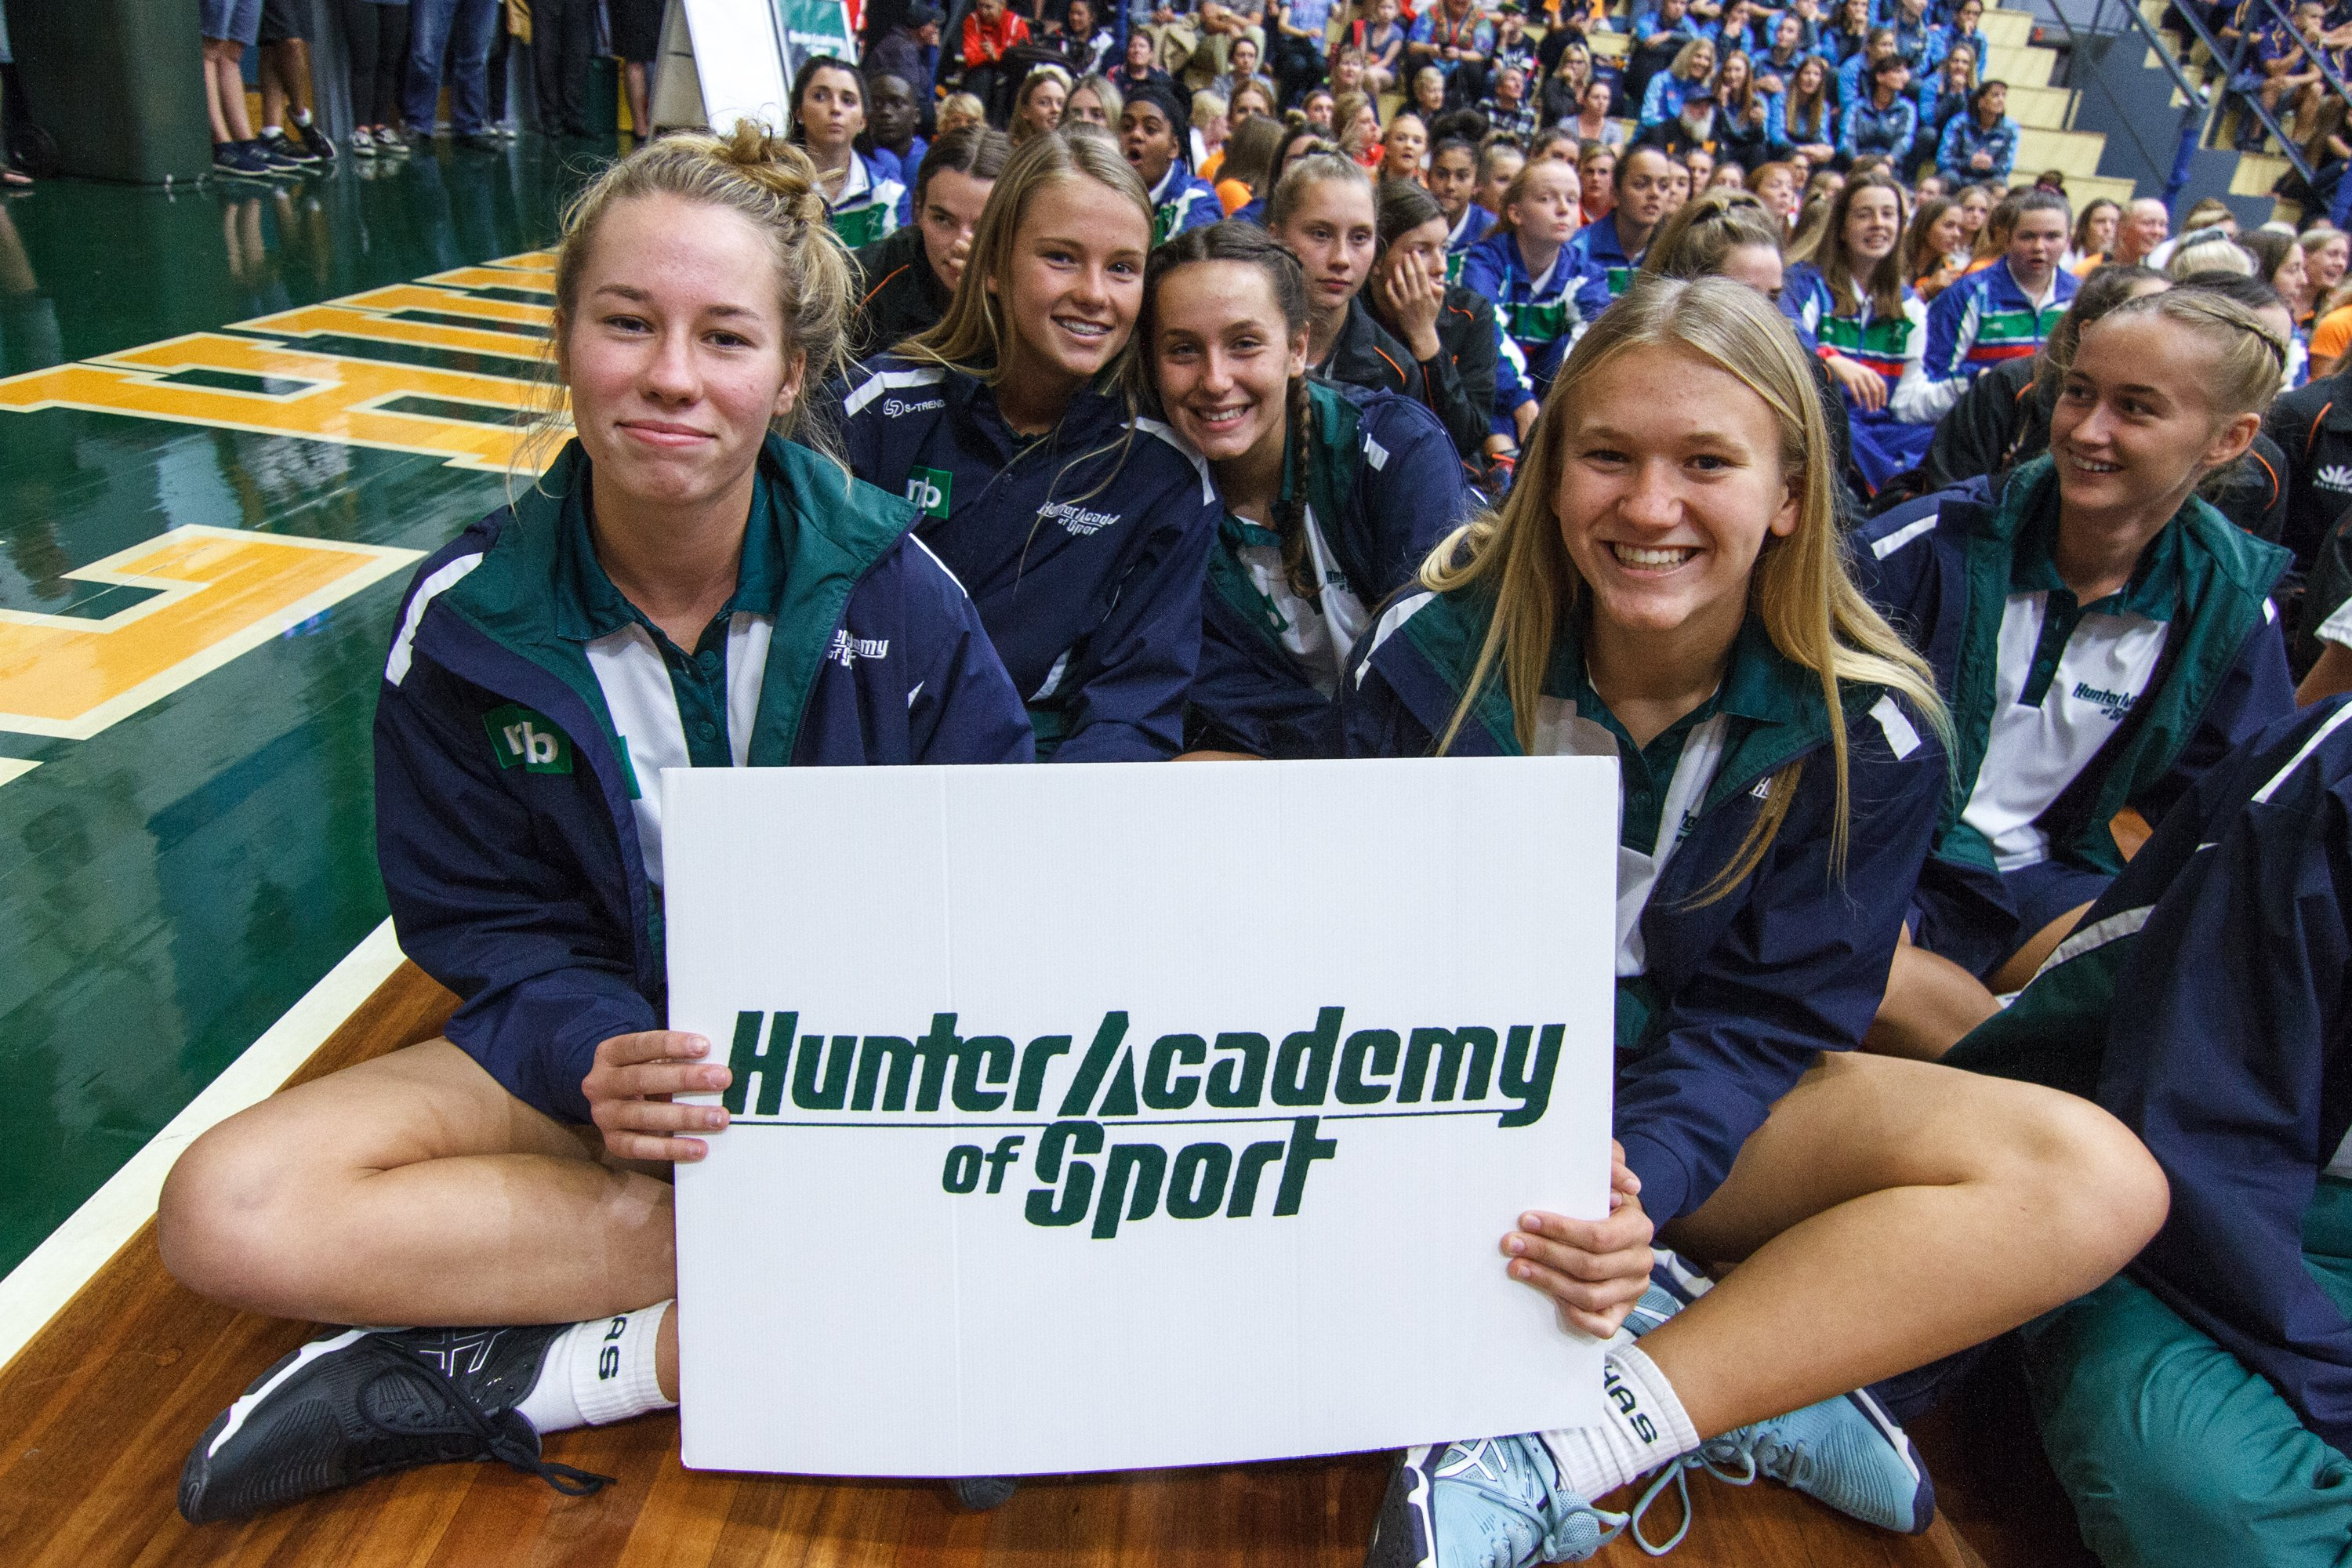 The Hunter Academy of Sport, in collaboration with the NSW Regional Academies of Sport, has welcomed federal and state investment into a National High-Performance Sport Strategy.